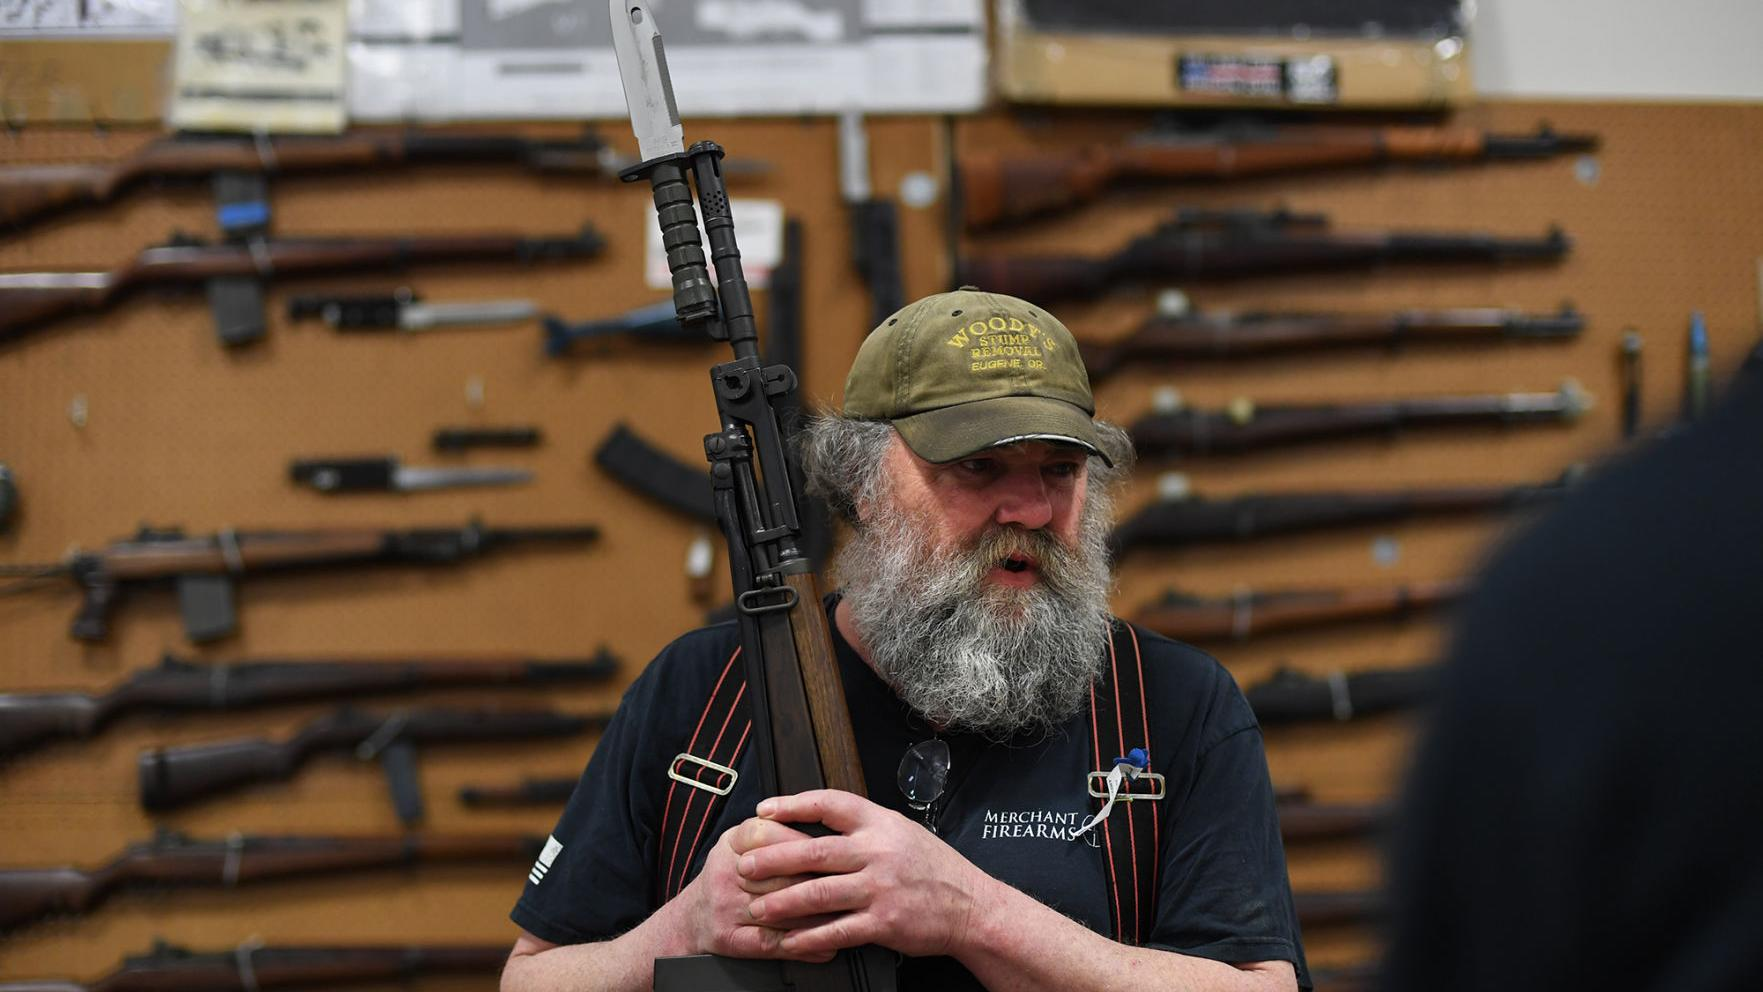 The art of weaponry: Firearms old and new displayed at gun show; merchants say sales slow in Trump era